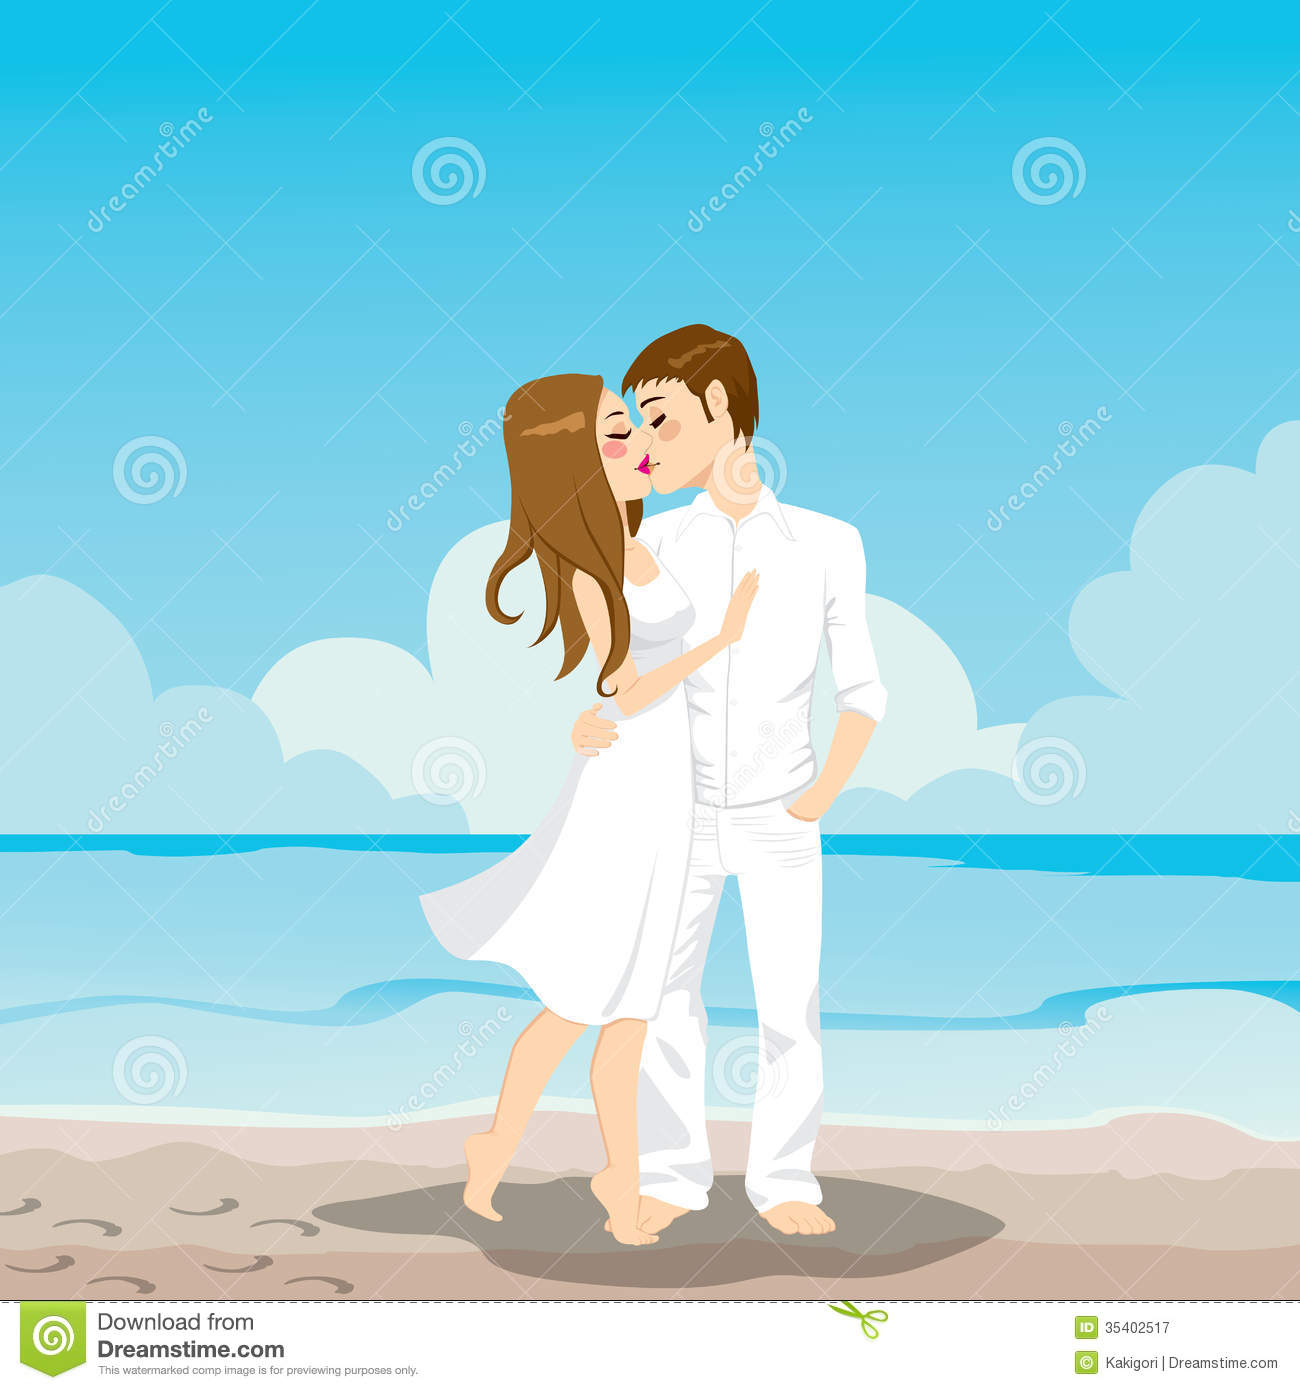 Happy Couple Sitting On Sandy Beach Embracing Kissing: Couple Kissing On Beach Stock Vector. Illustration Of